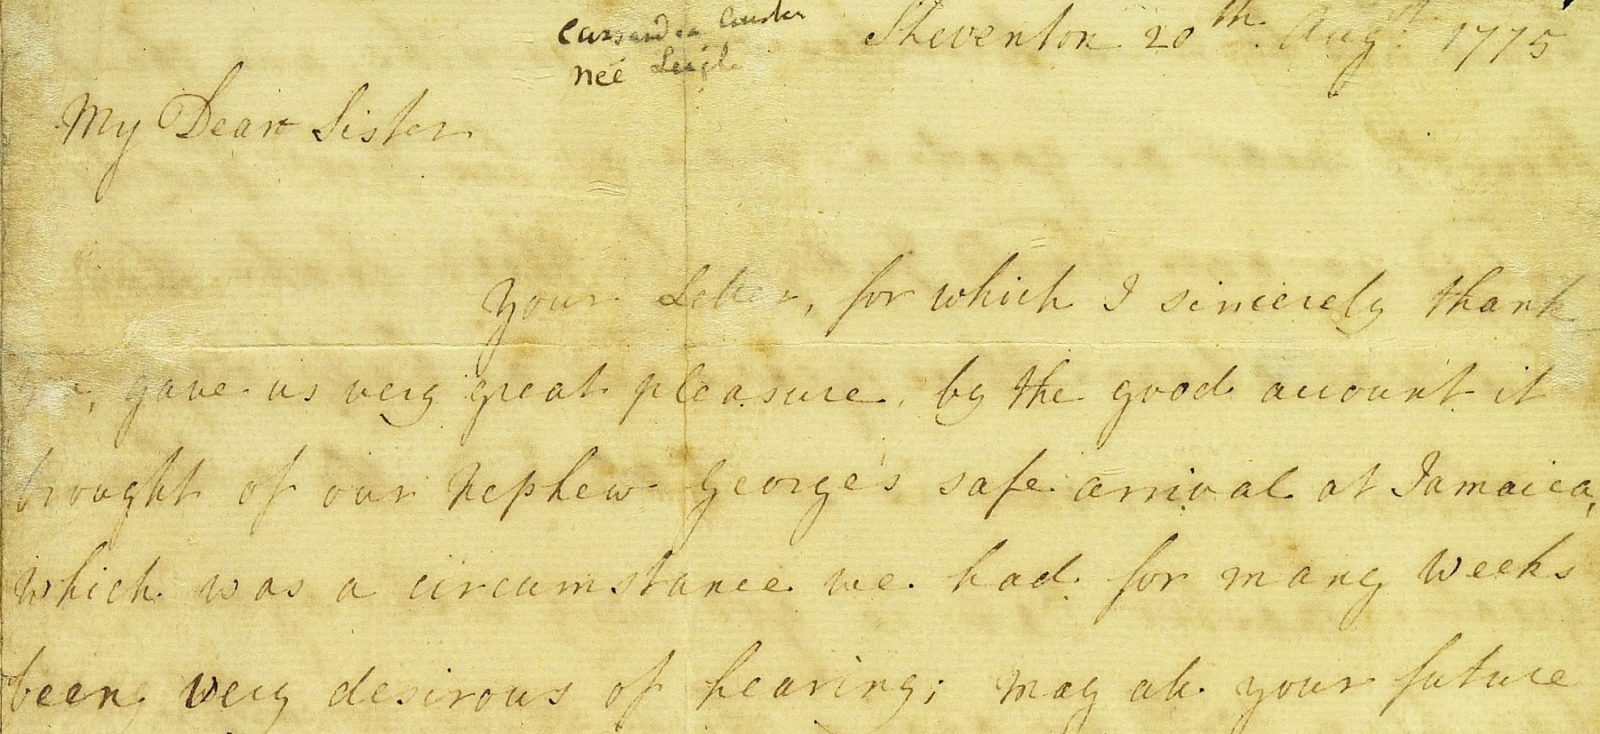 Close up of a letter from Mrs Austen to Mrs Walter, 20 August 1775